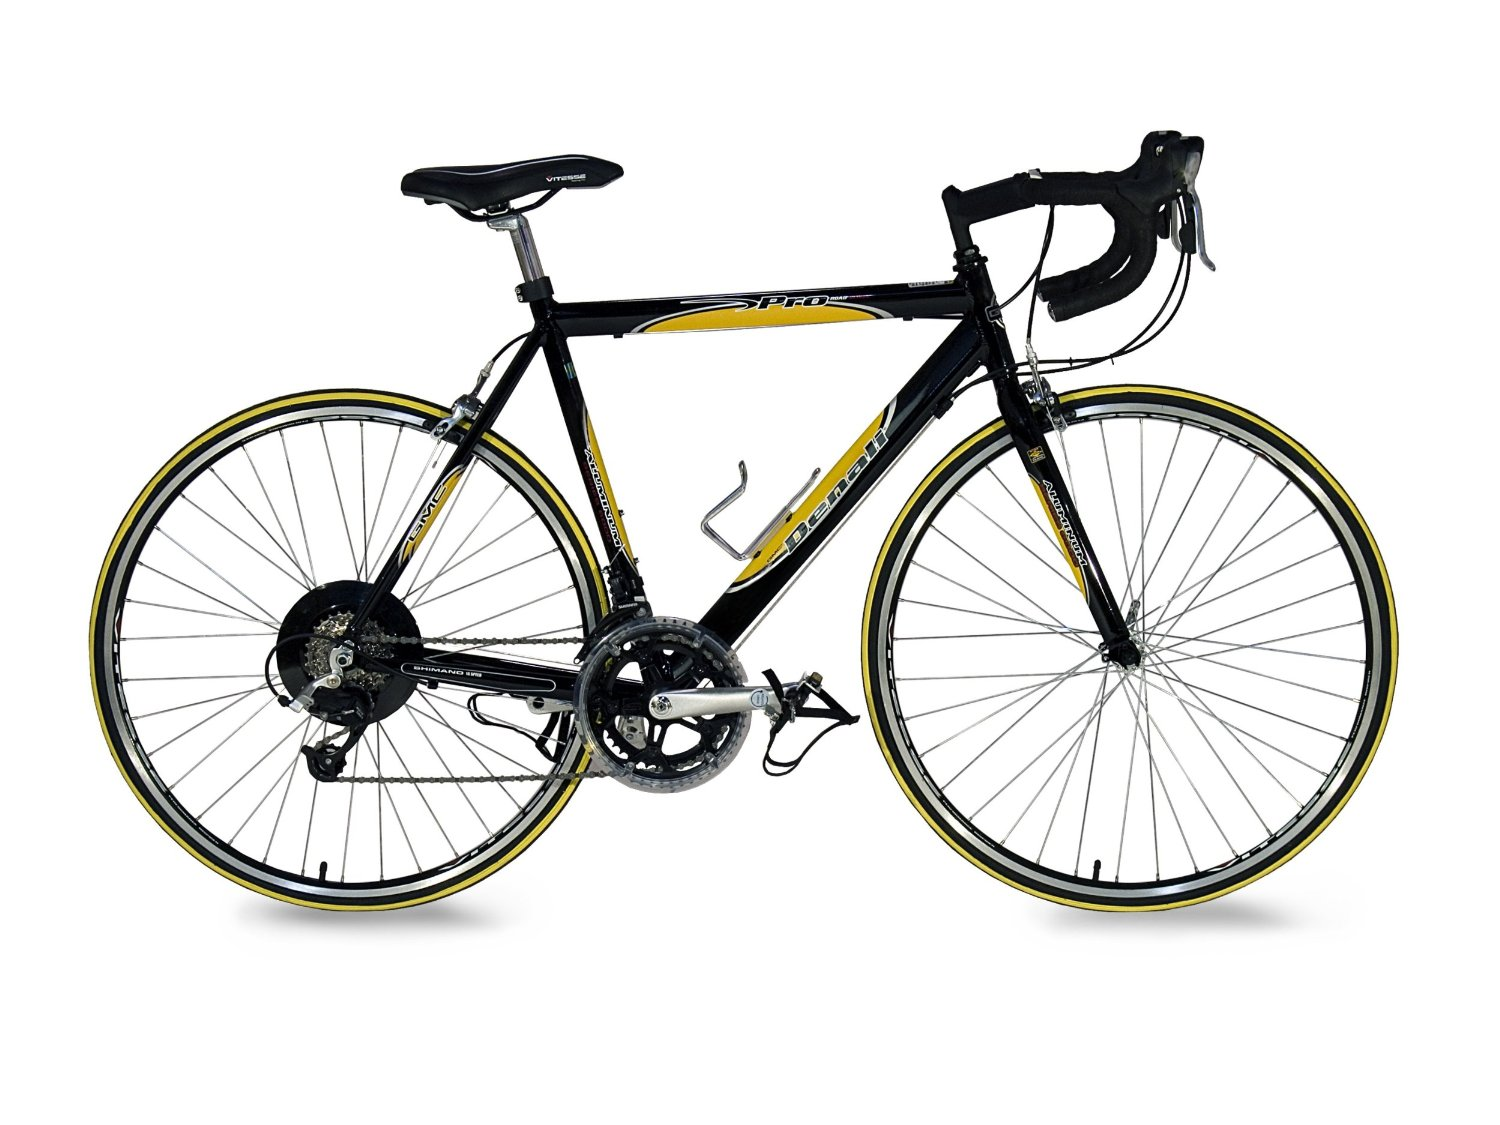 GMC Denali Road Bike Vs. GMC Denali Pro Road Bike: Which ...